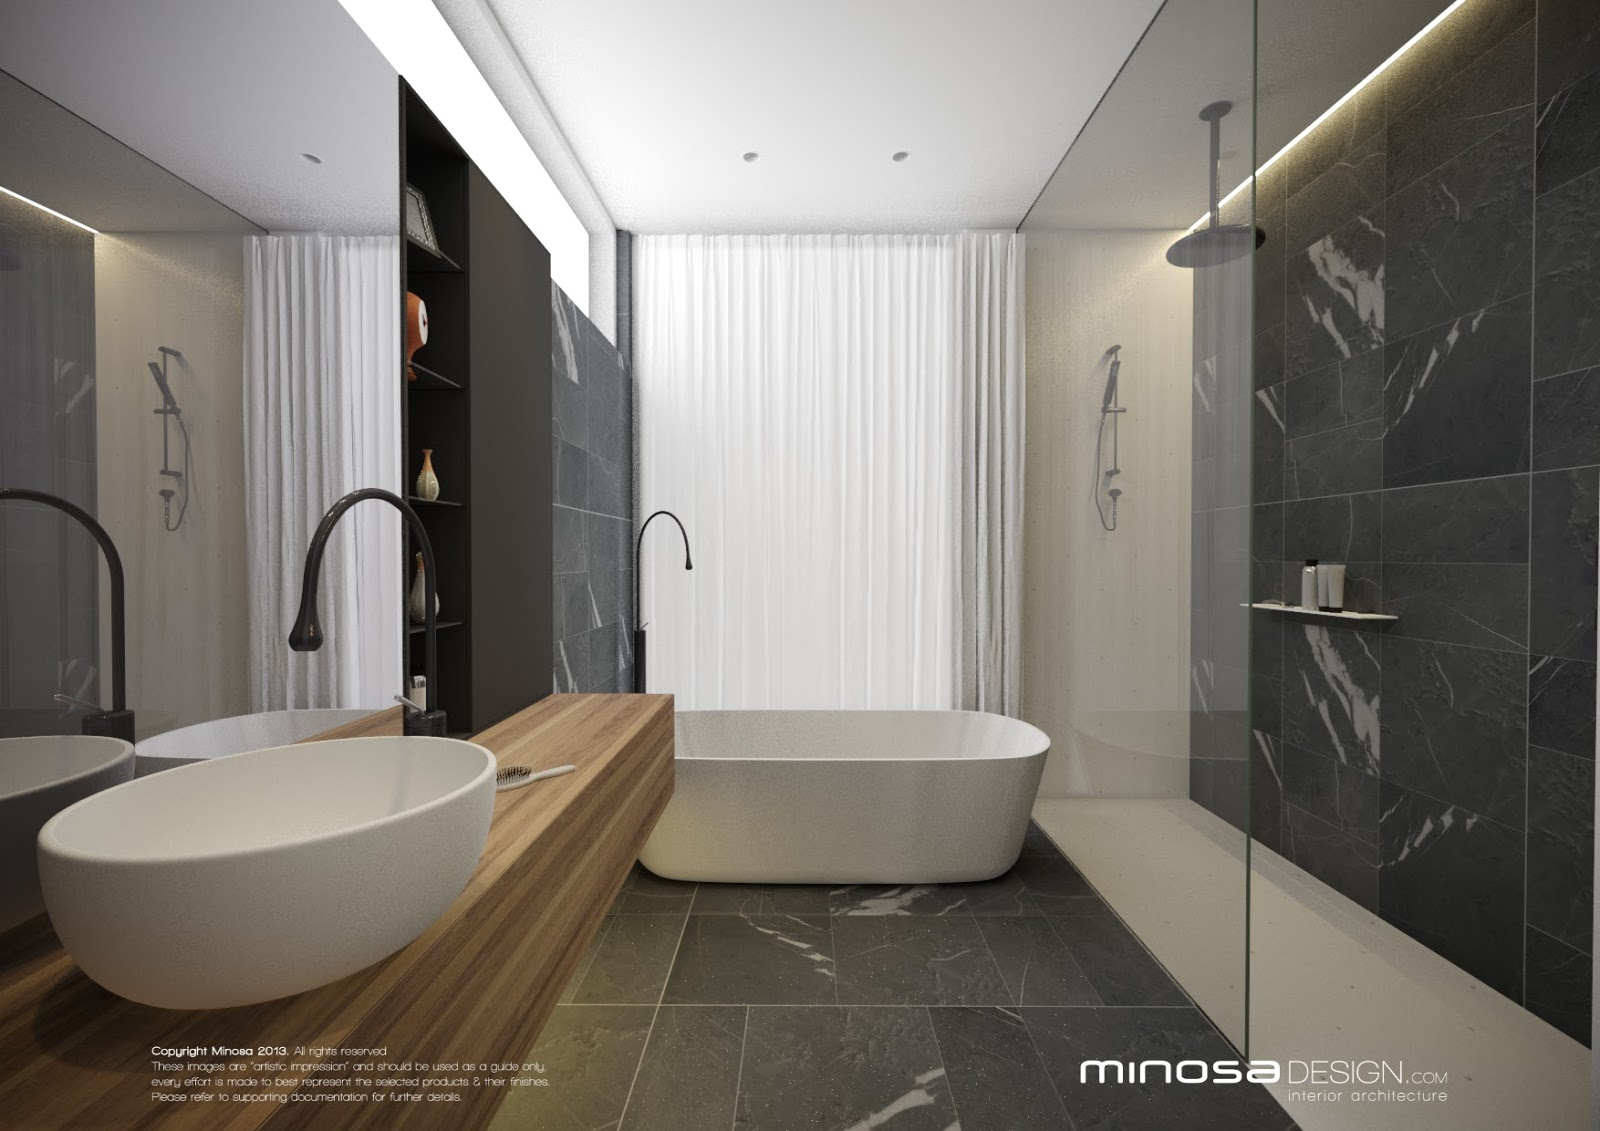 Minosa modern bathroom design to share New design in bathroom